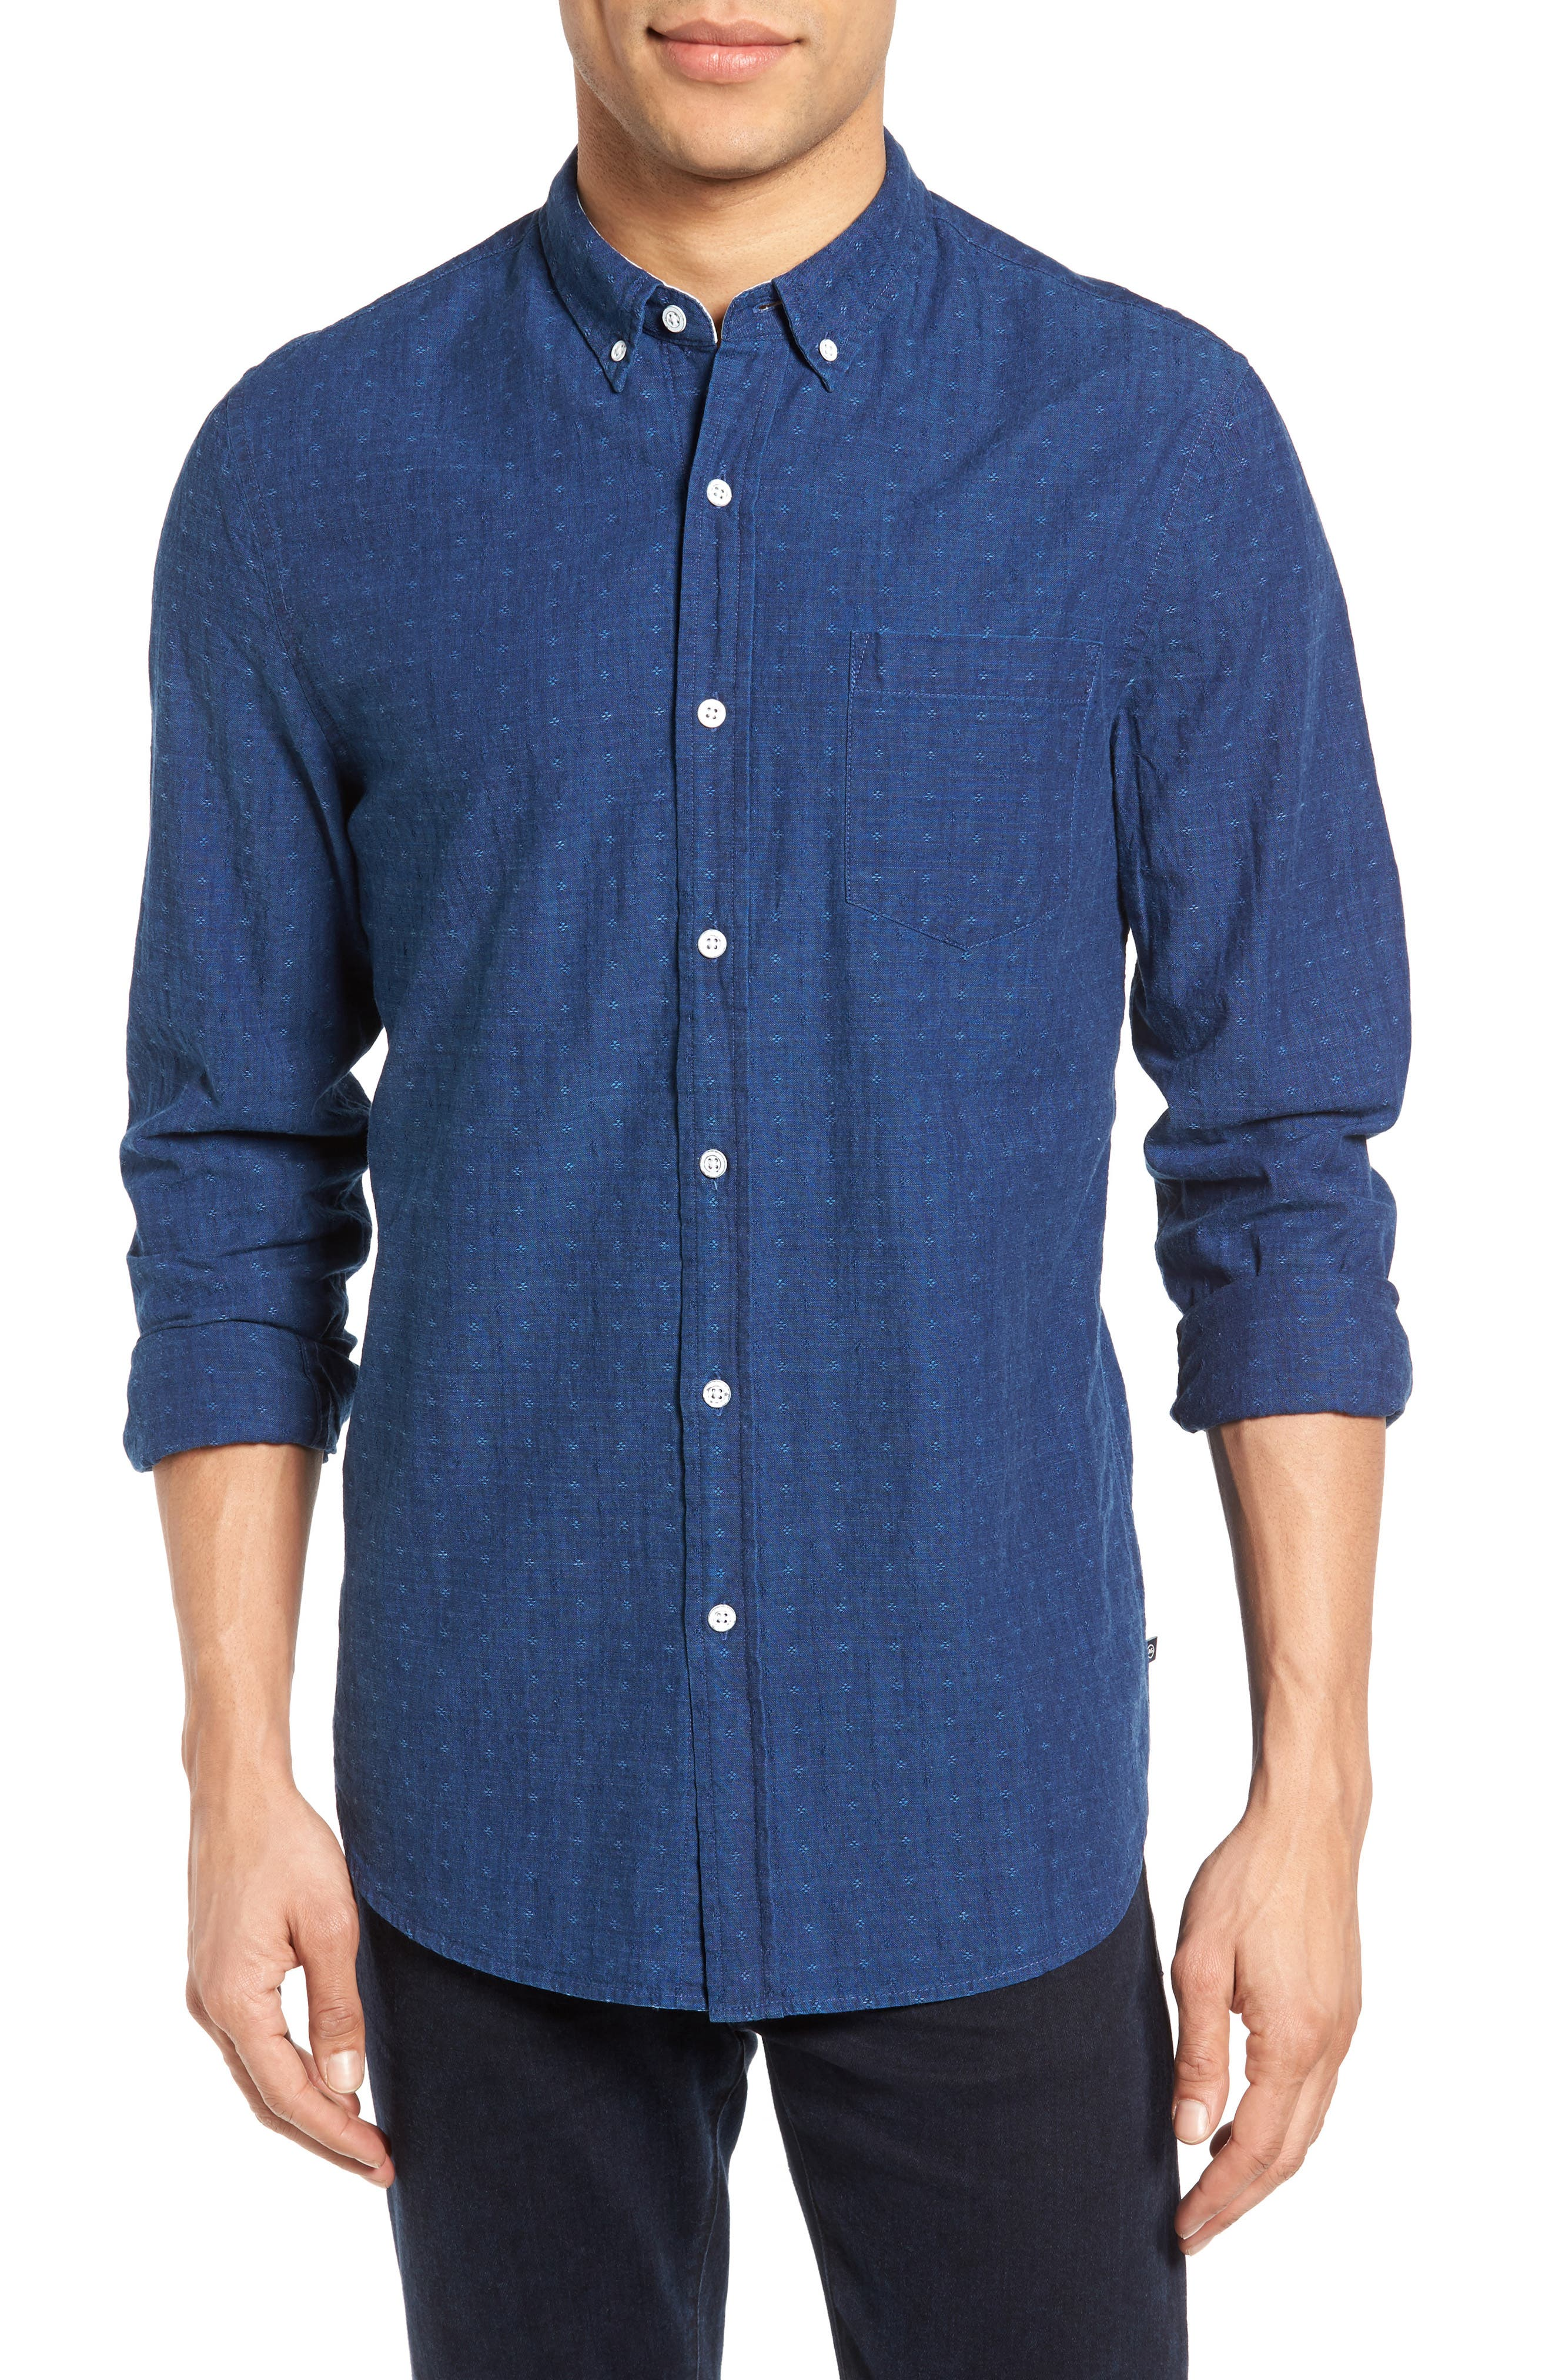 Grady Trim Fit Jacquard Sport Shirt,                         Main,                         color, Washed Indigo